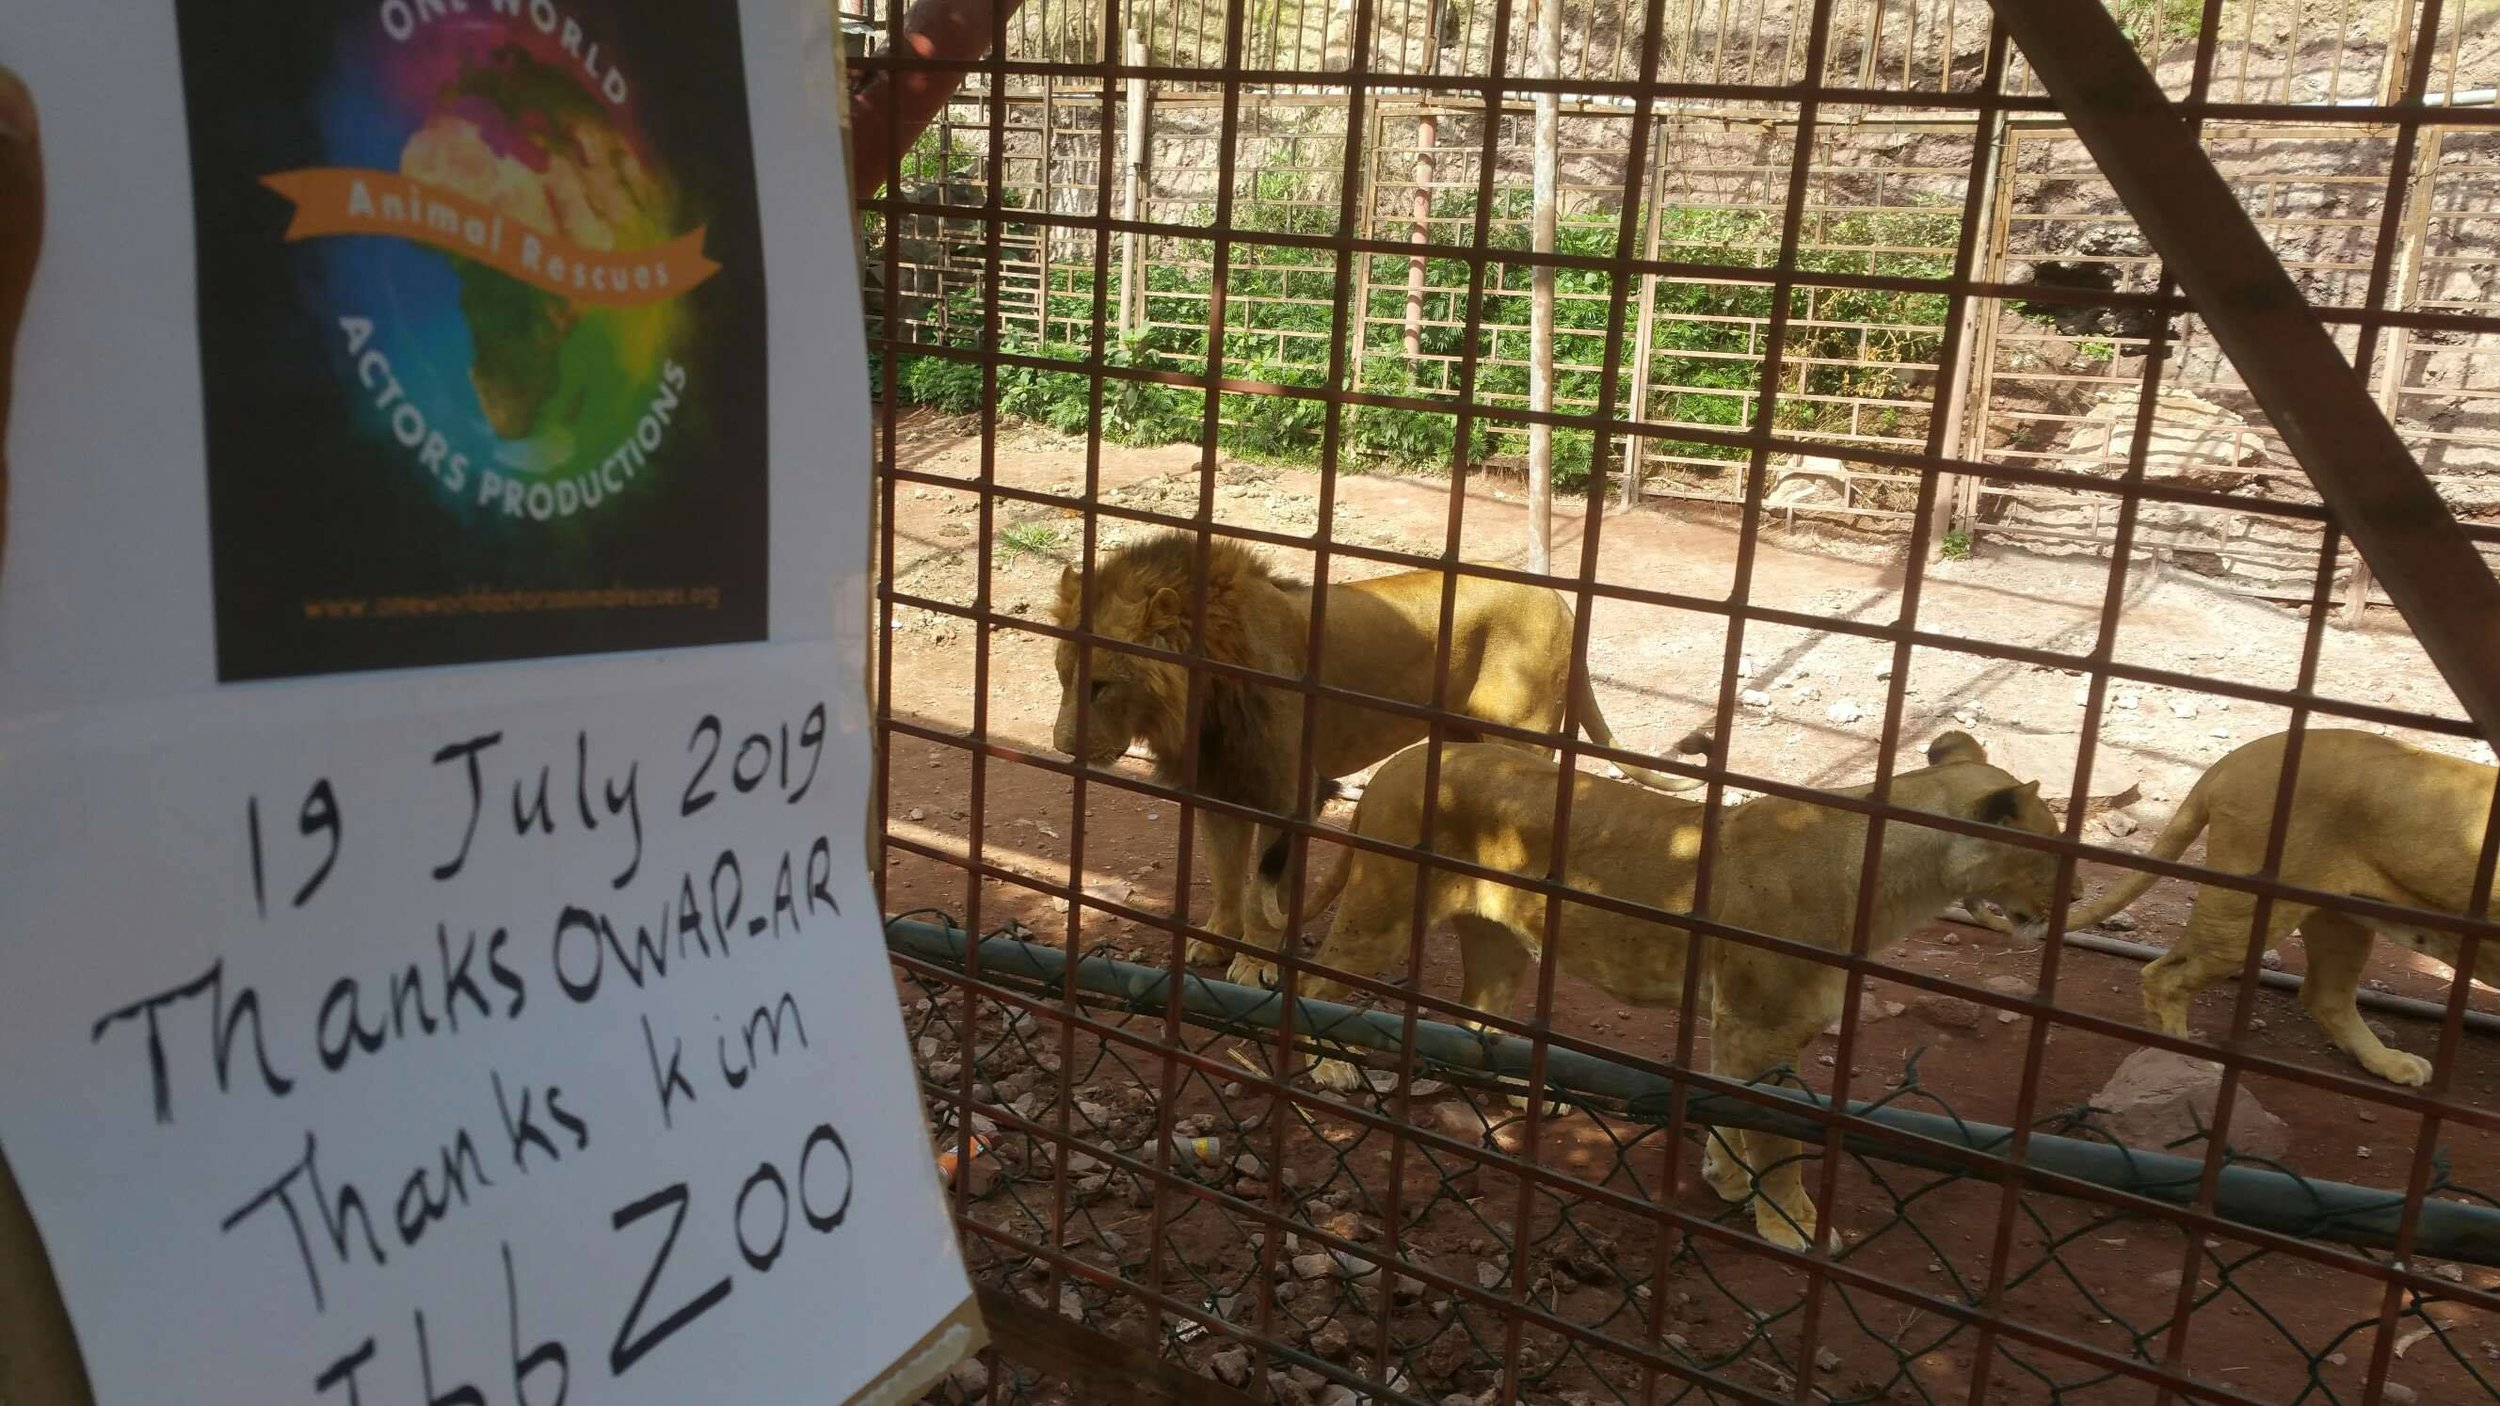 ibb zoo 19 July 2019 OWAP AR sign with 2 of the 4 adult females  yemen rescue.jpg